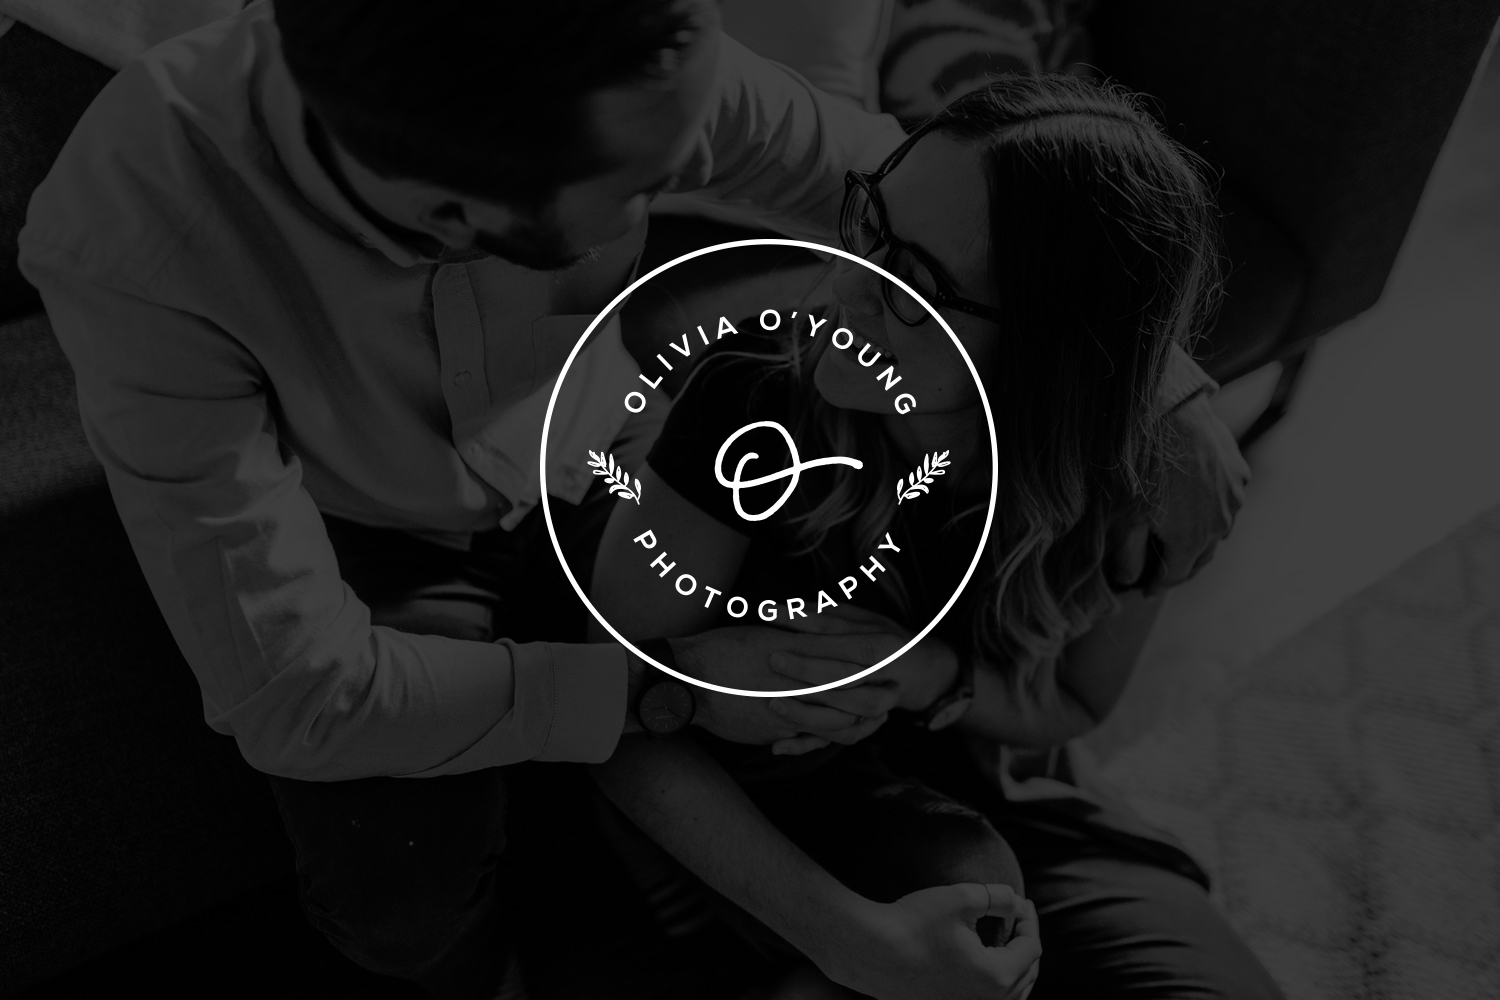 olivia oyoung photography branding